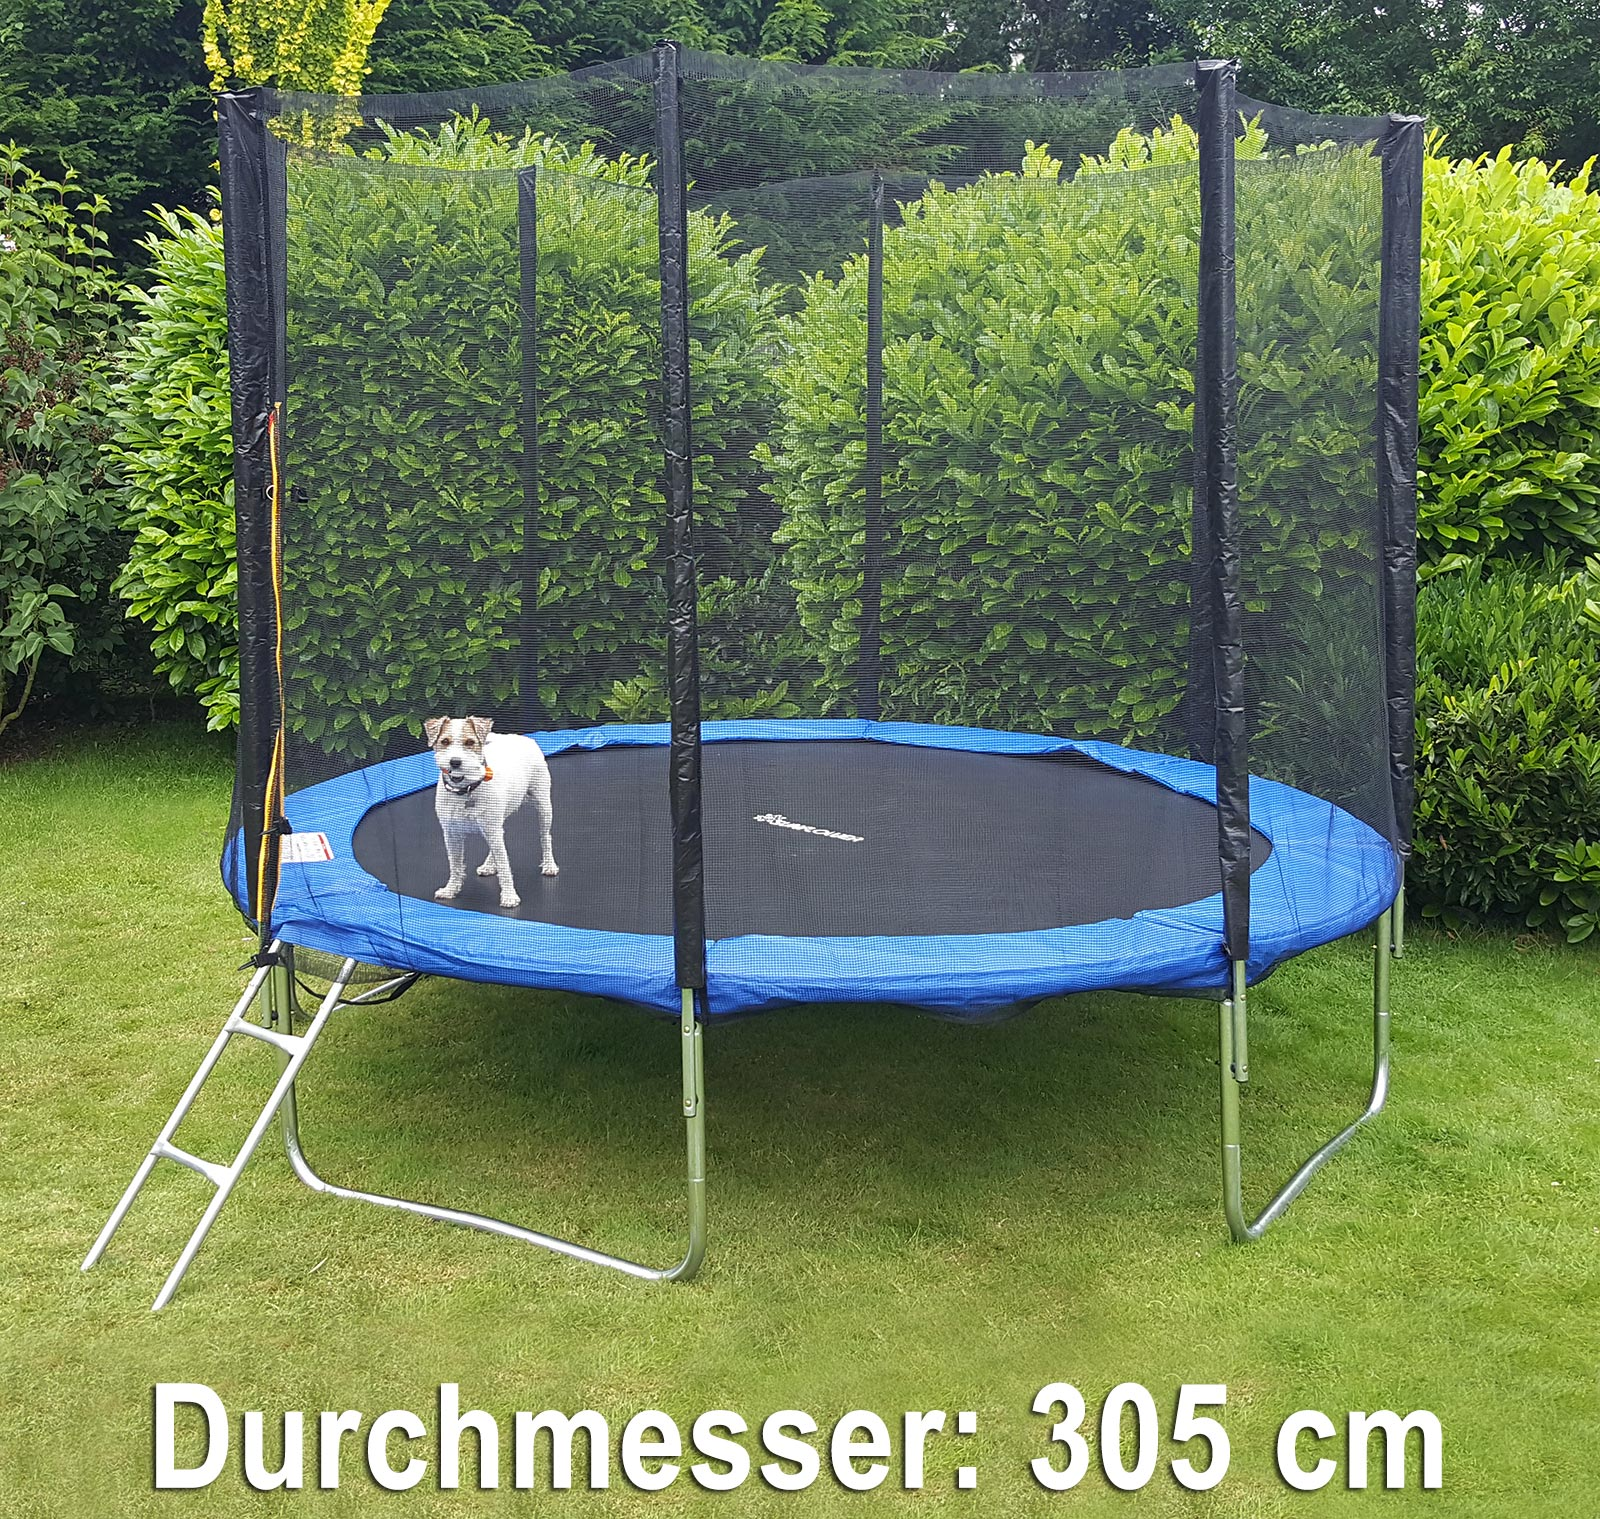 trampolin 305 cm komplett mit leiter und sicherheitsnetz blau ebay. Black Bedroom Furniture Sets. Home Design Ideas